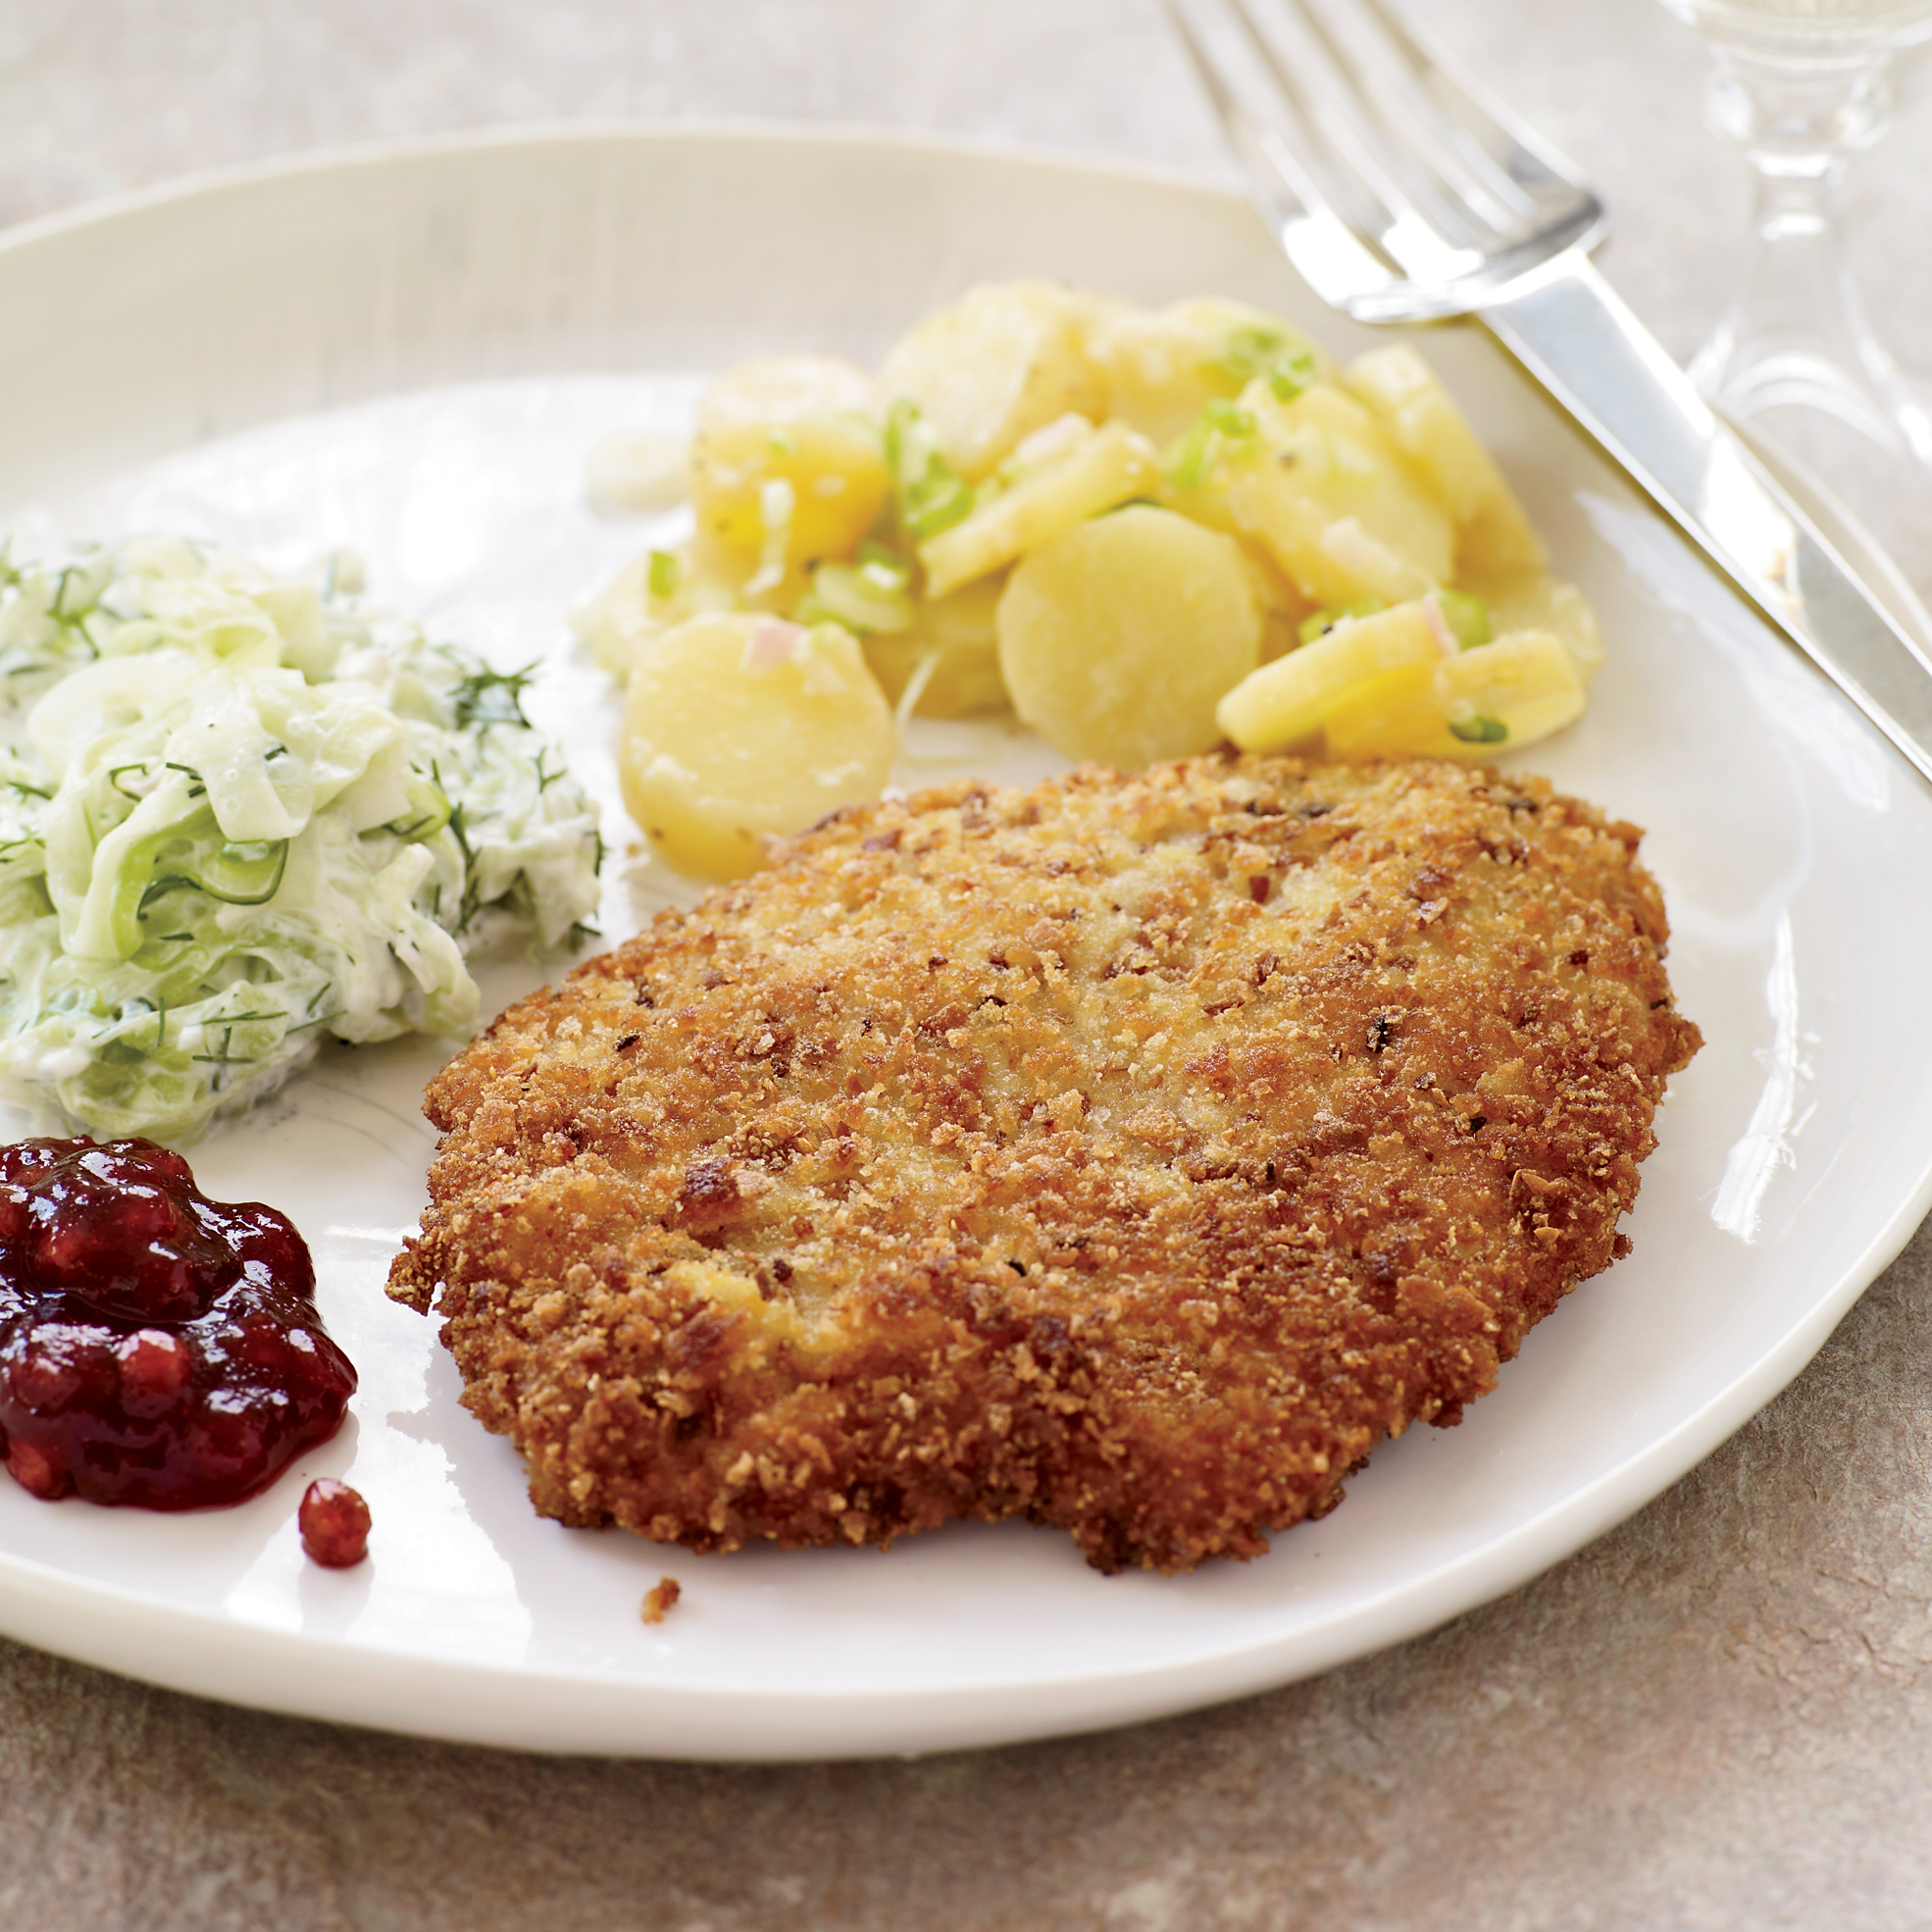 how to cook schnitzel without oil